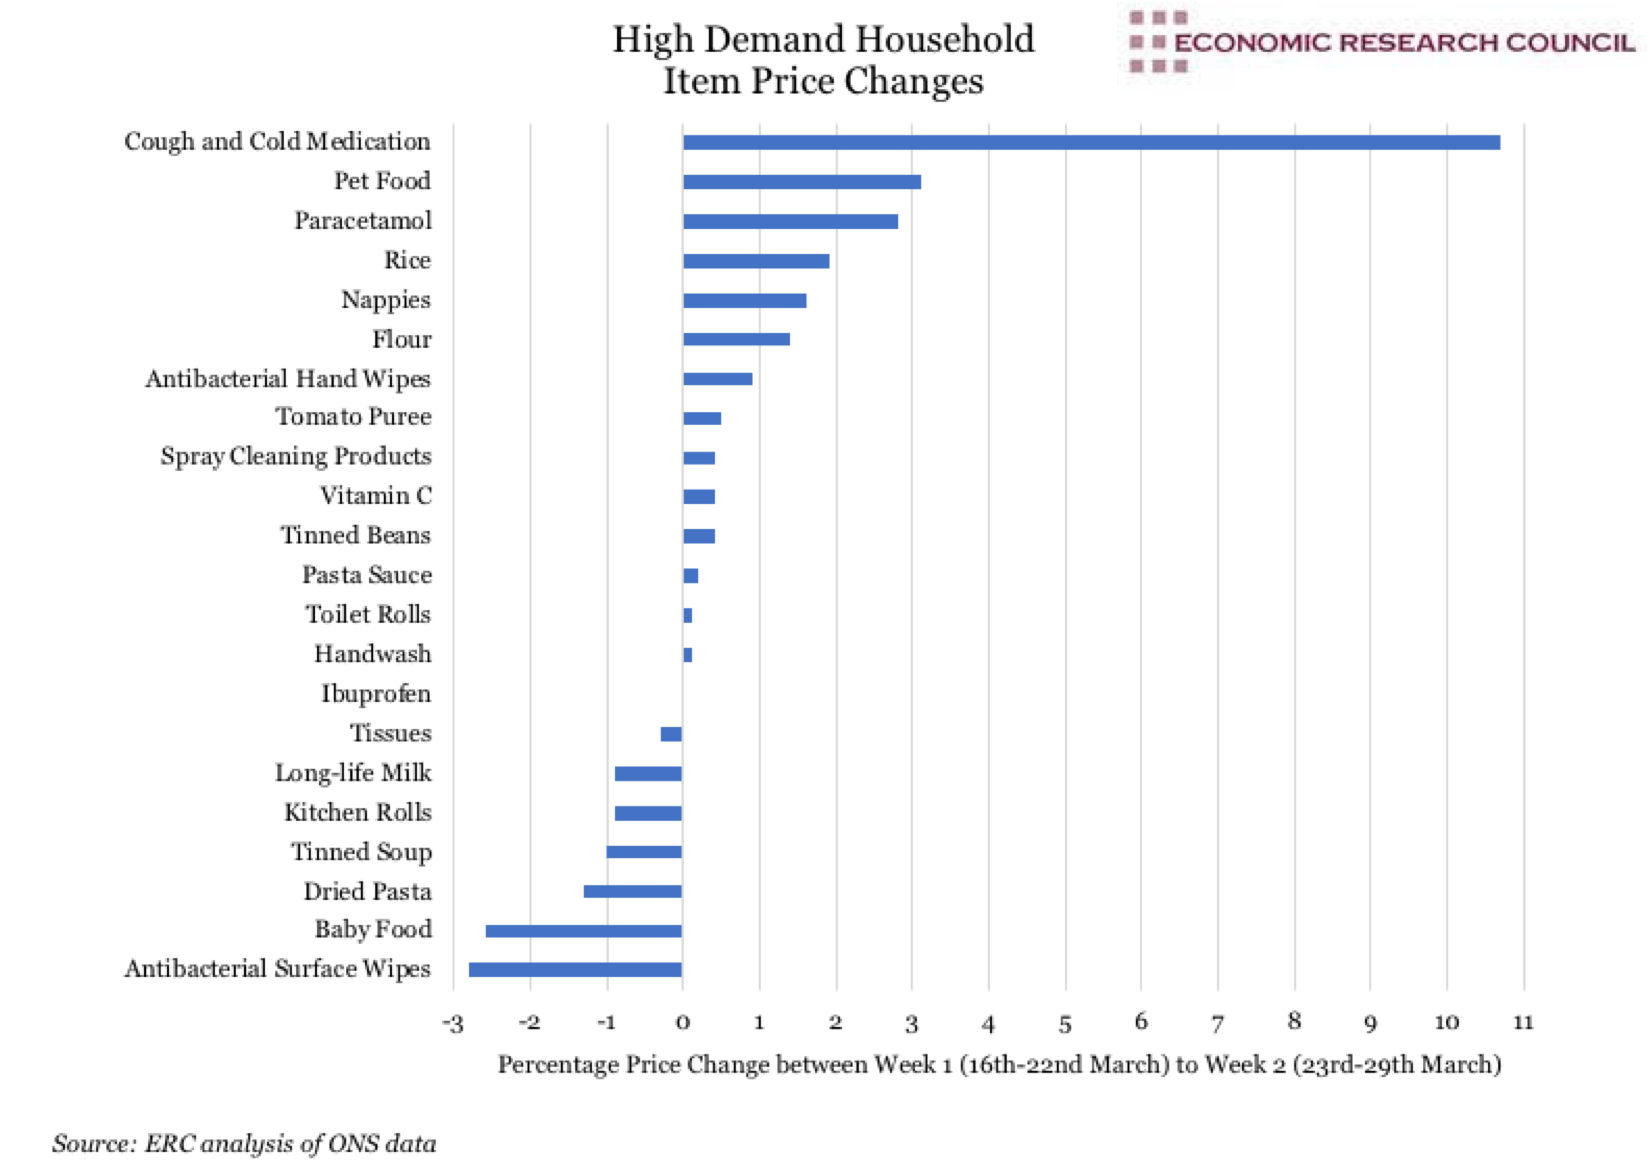 High Demand Household Items Price Changes